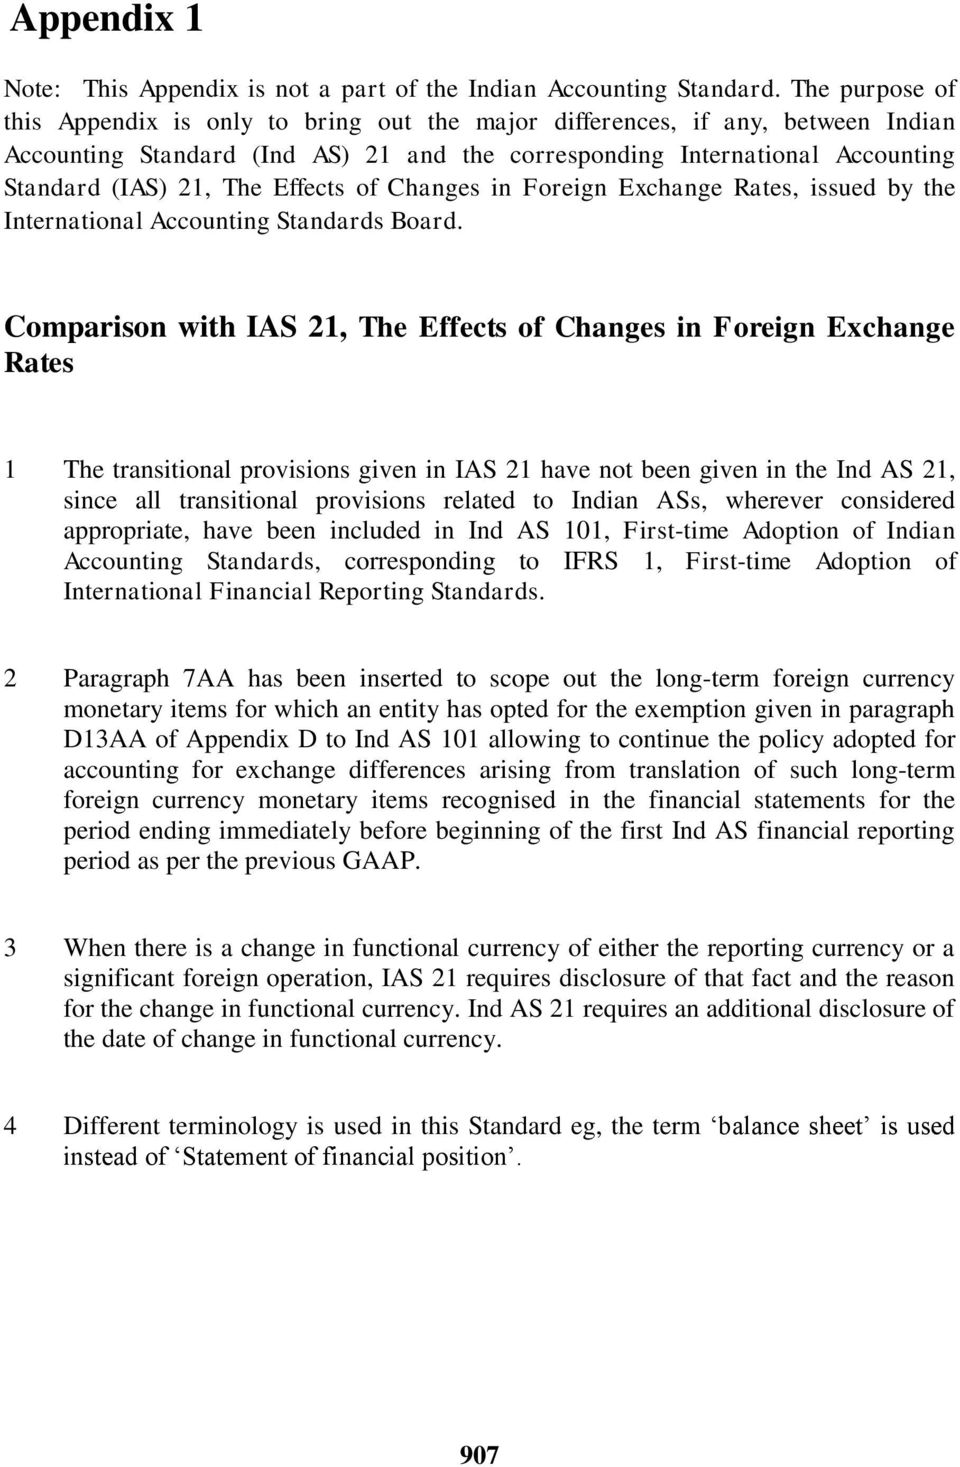 Effects of Changes in Foreign Exchange Rates, issued by the International Accounting Standards Board.